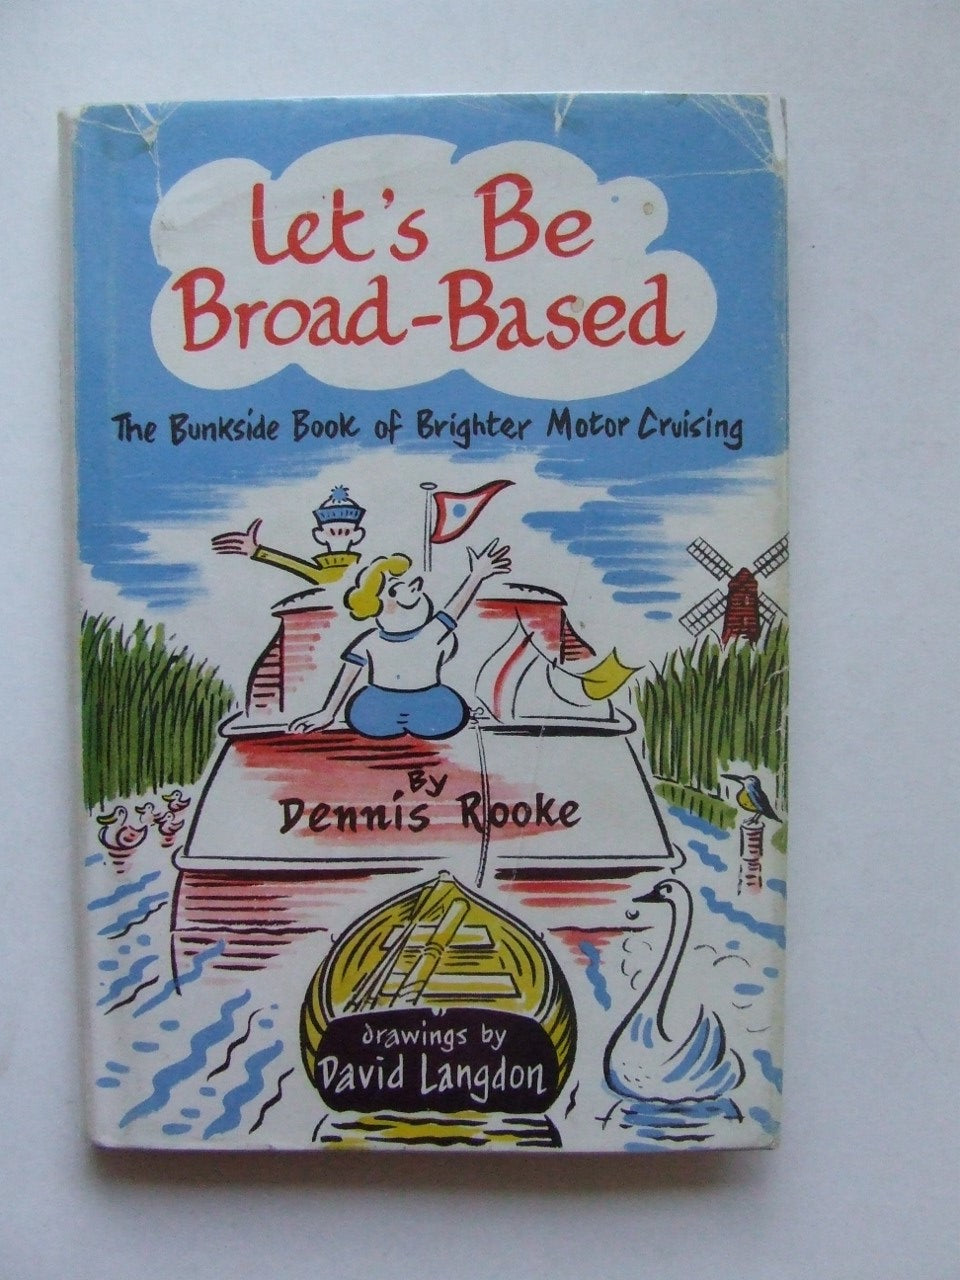 Let's be Broad-Based, the bunkside book of brighter motor cruising